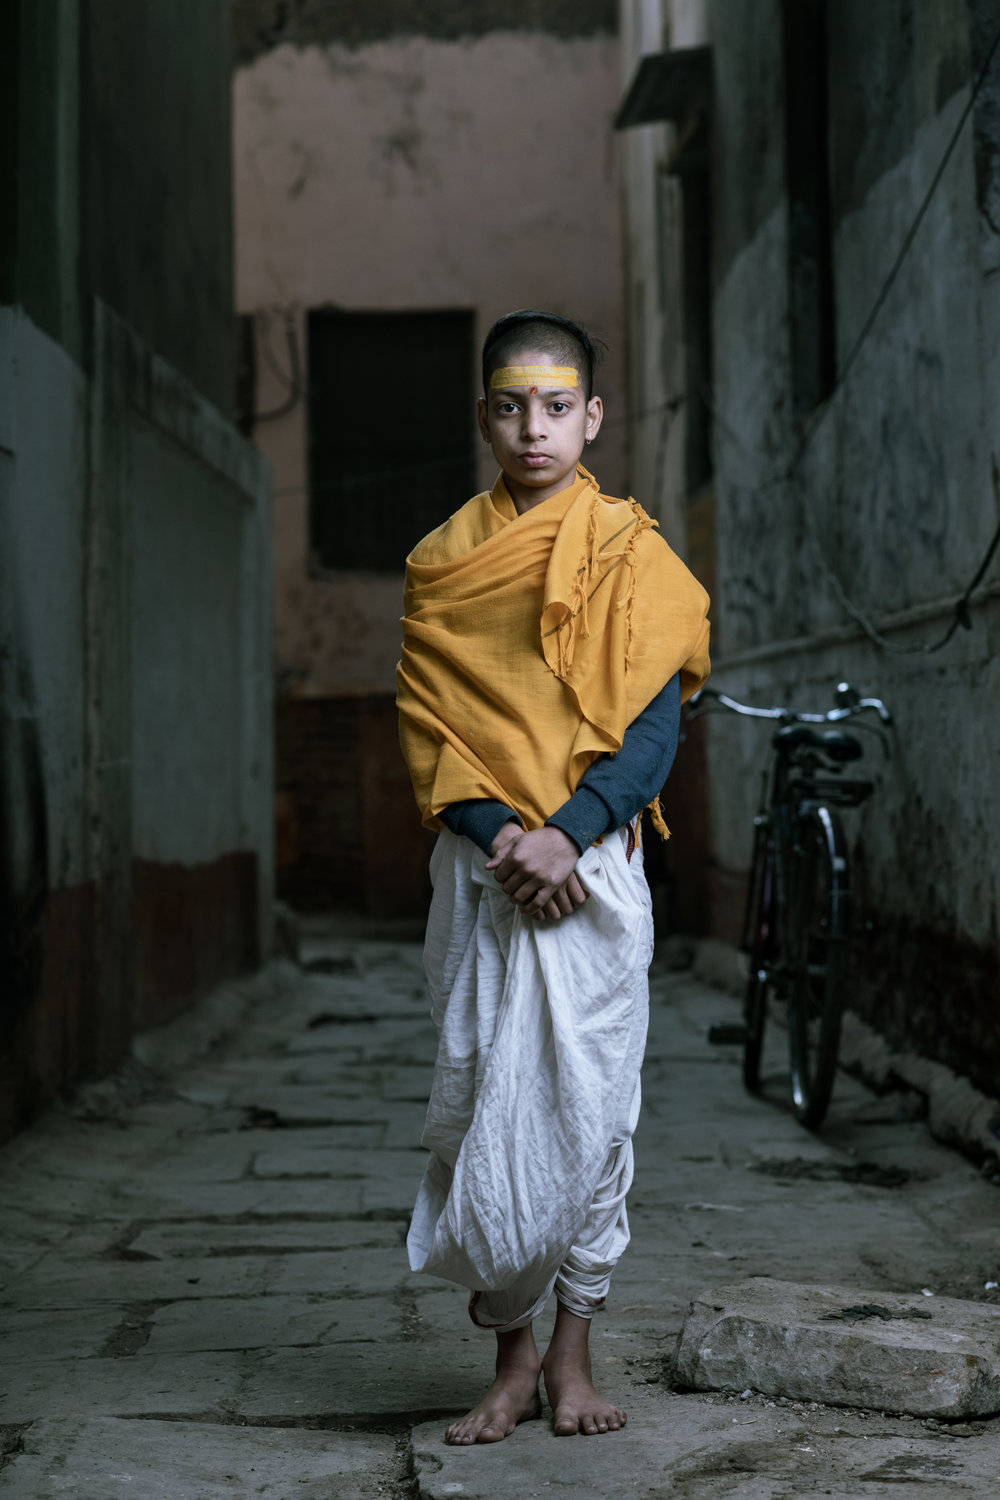 Varanasi_portrait_travel_photography_Manchester_Adventure_Photographer_Jan_Bella23.jpg